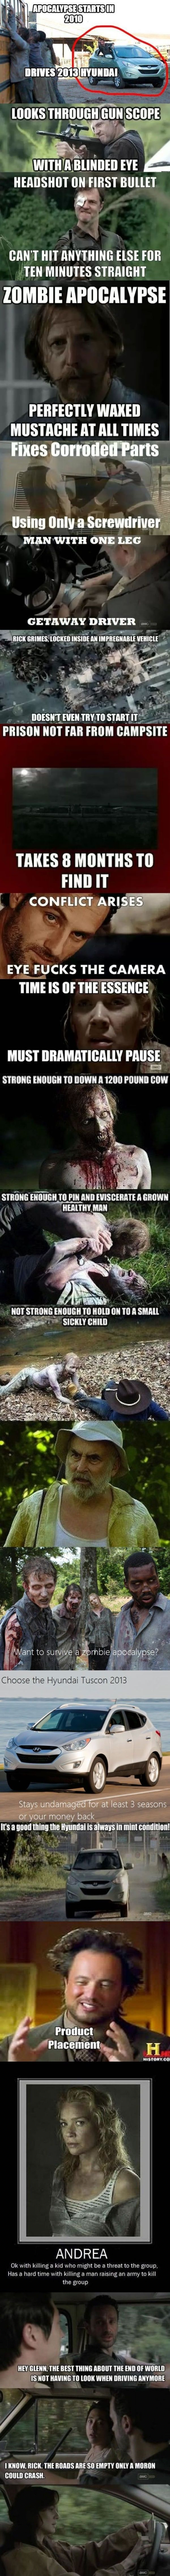 The Most Biting Walking Dead Memes - While I love this show, these are seriously hilarious & true! ;] Oh and let's not forget the baby! by B...